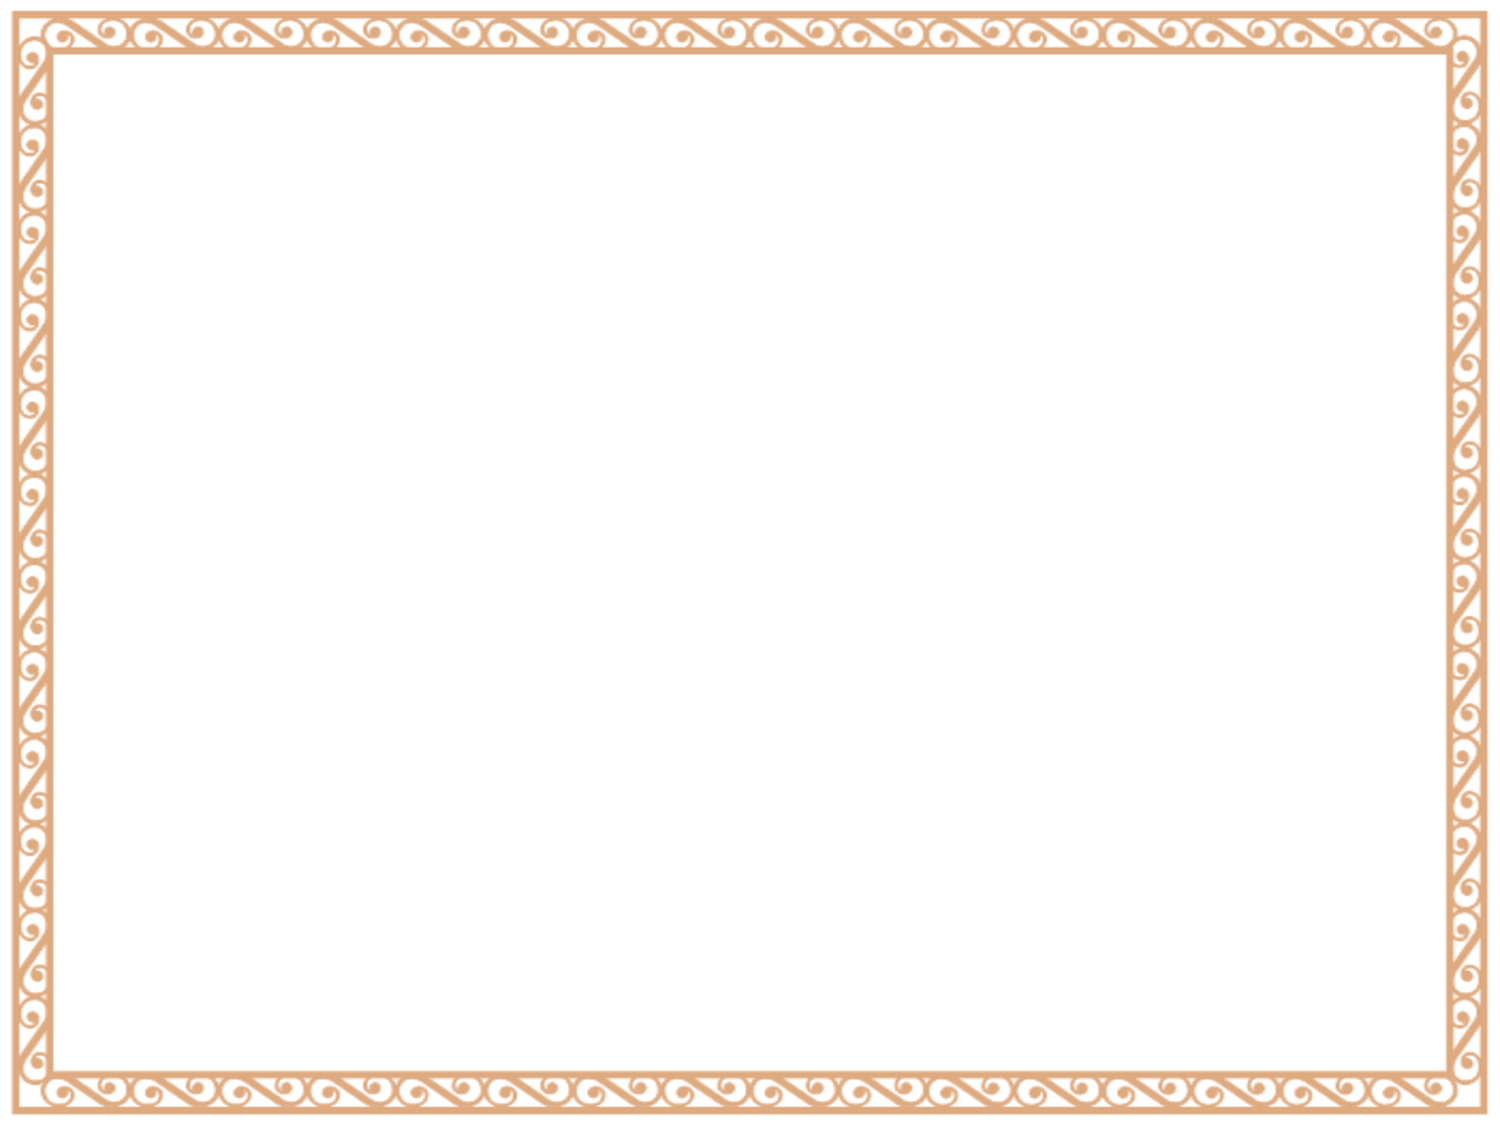 Free Certificate Border, Download Free Clip Art, Free Clip Pertaining To Free Printable Certificate Border Templates